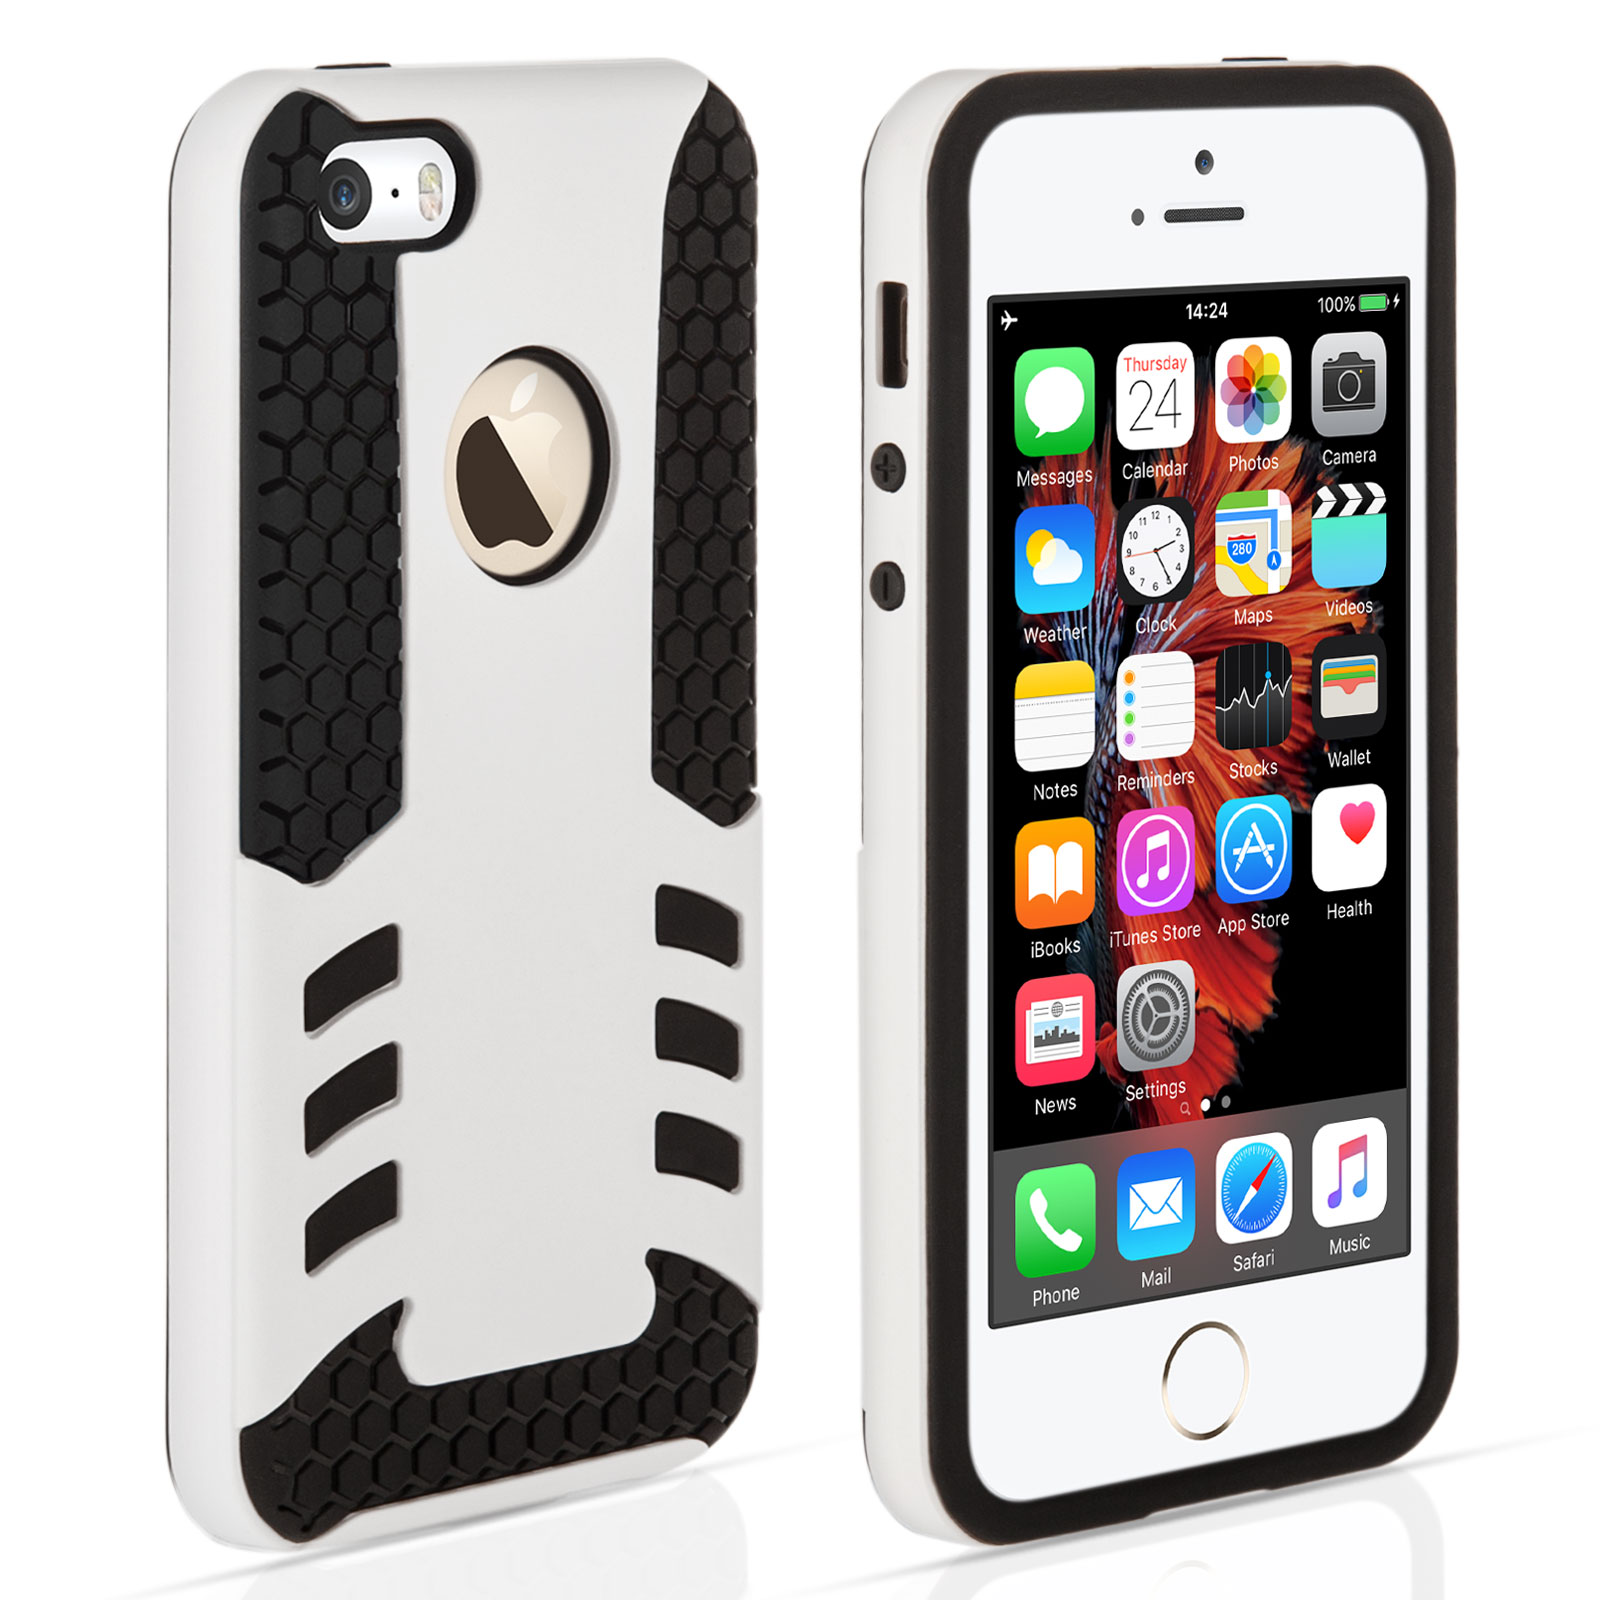 YouSave iPhone 5 / 5S / SE Border Combo Case - White